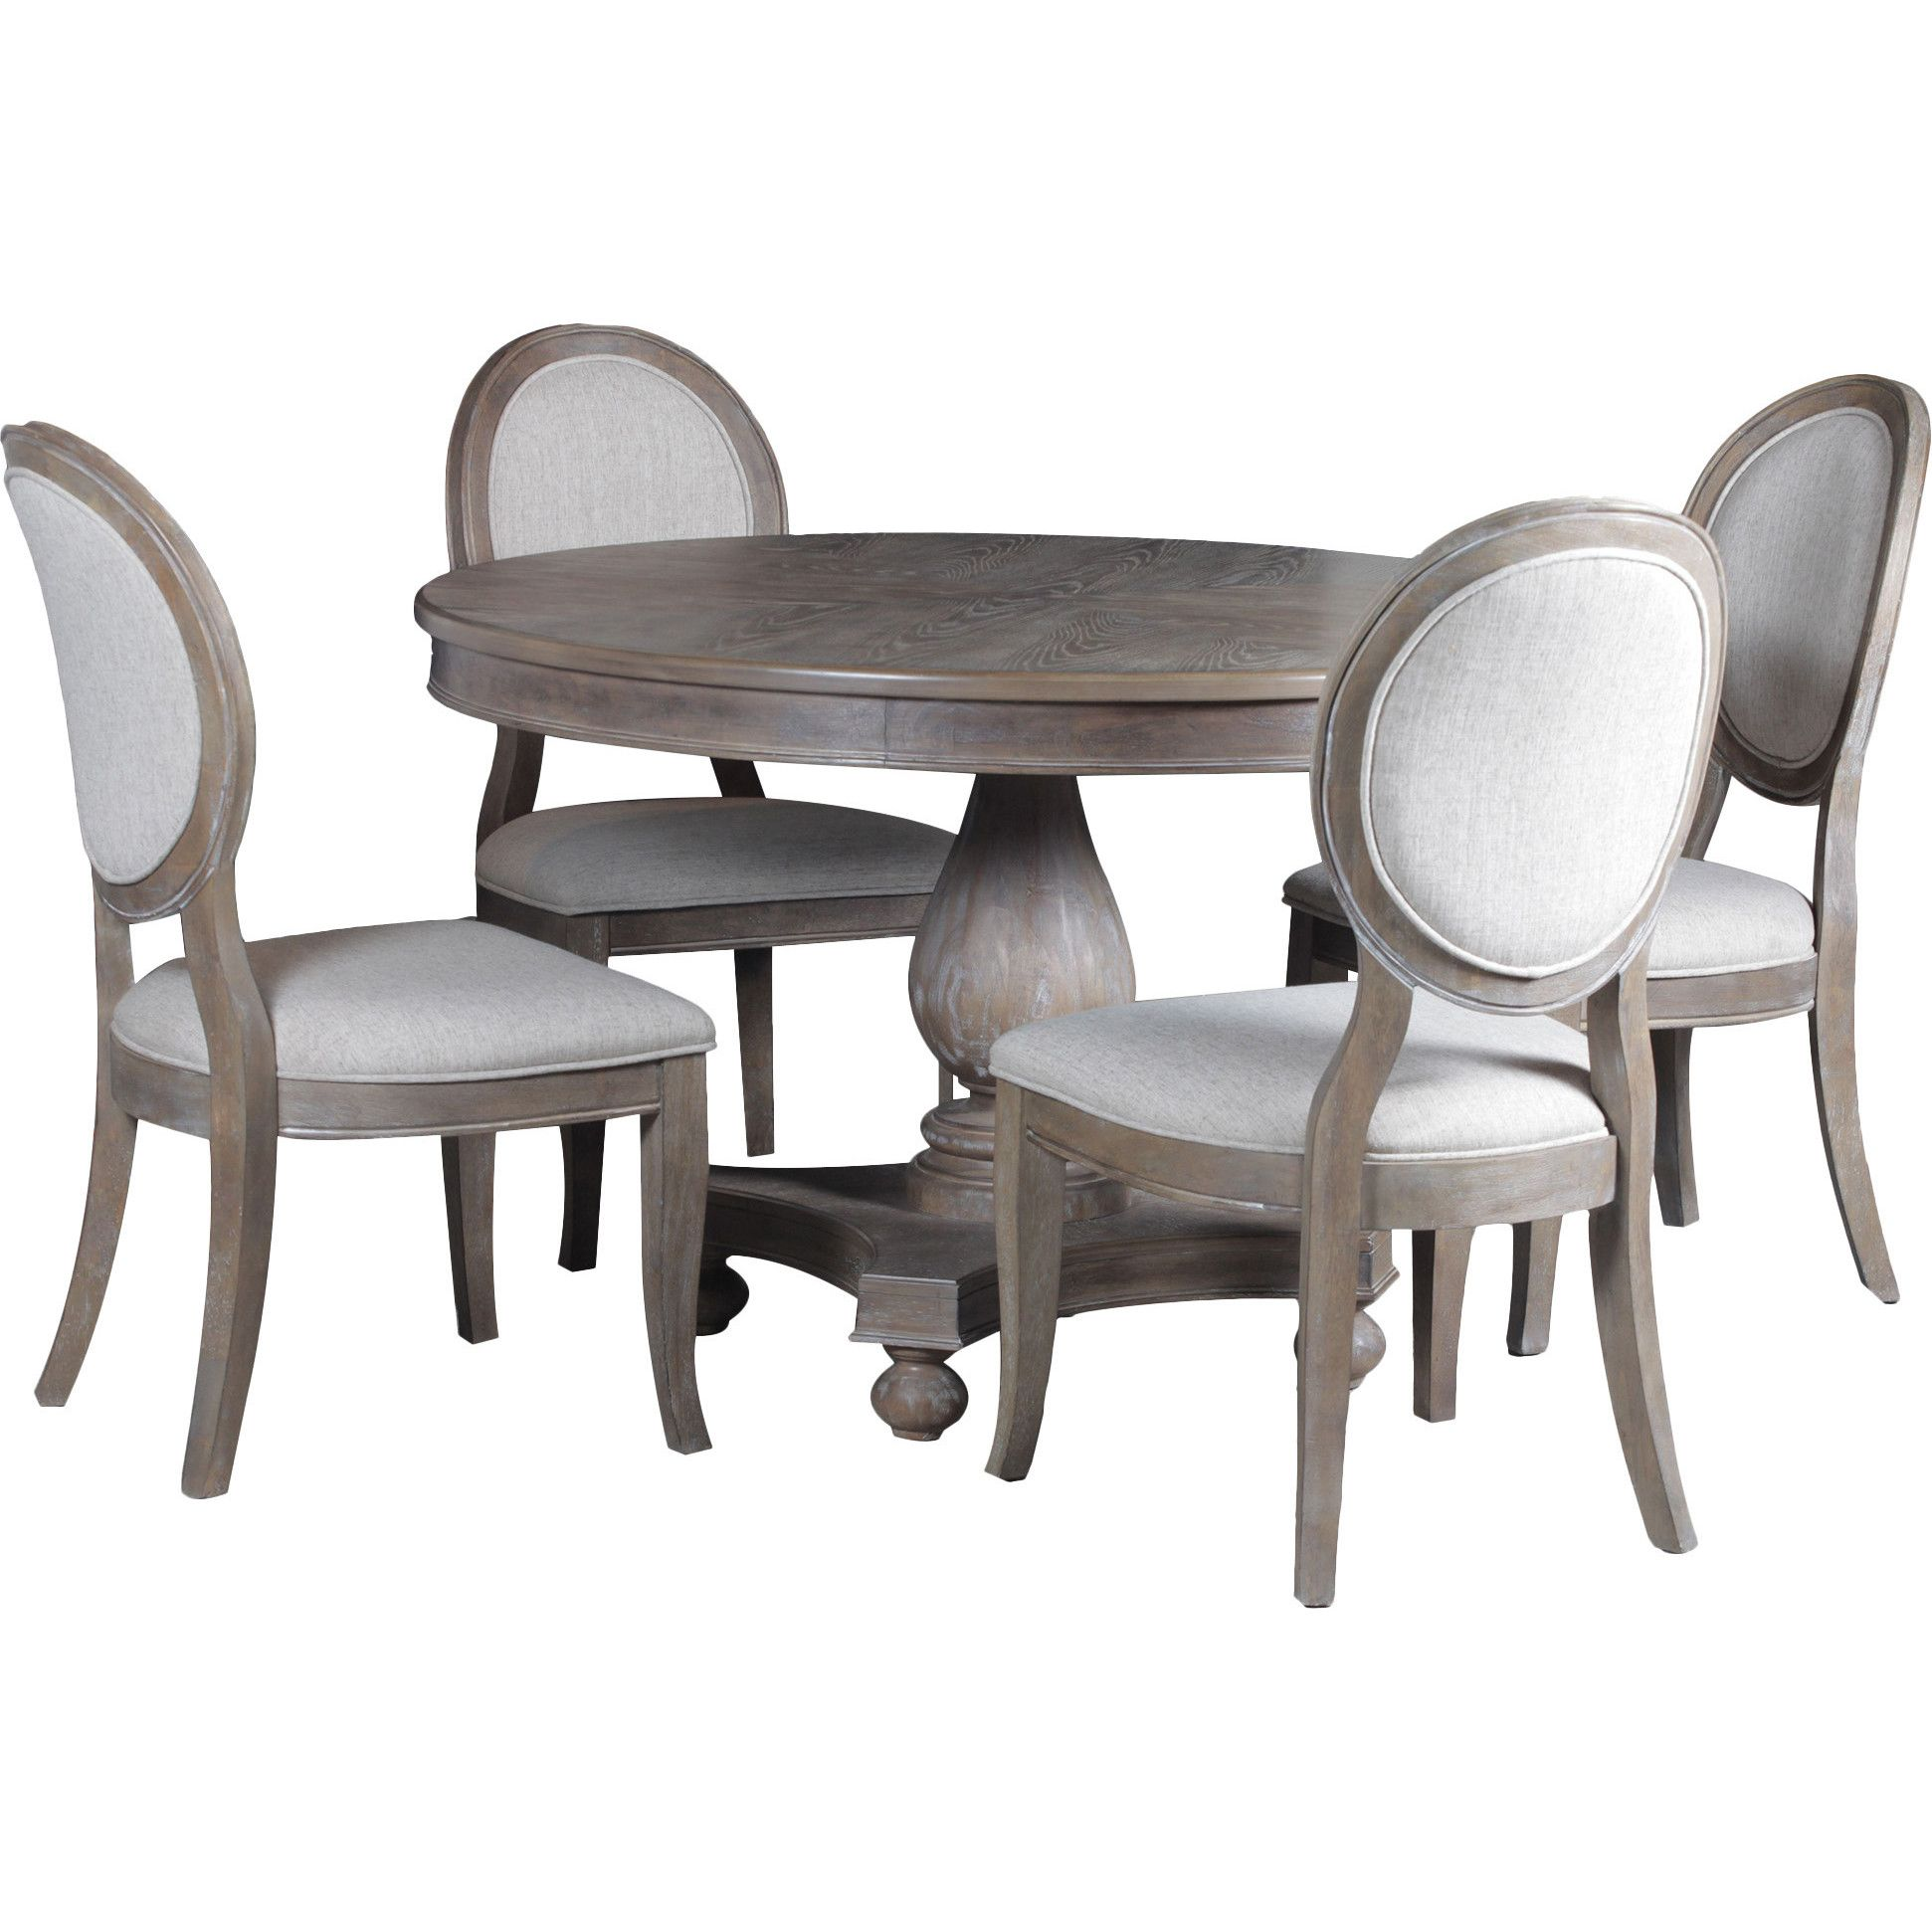 Hallows Creek 5 Piece Dining Set Round Dining Set Dining